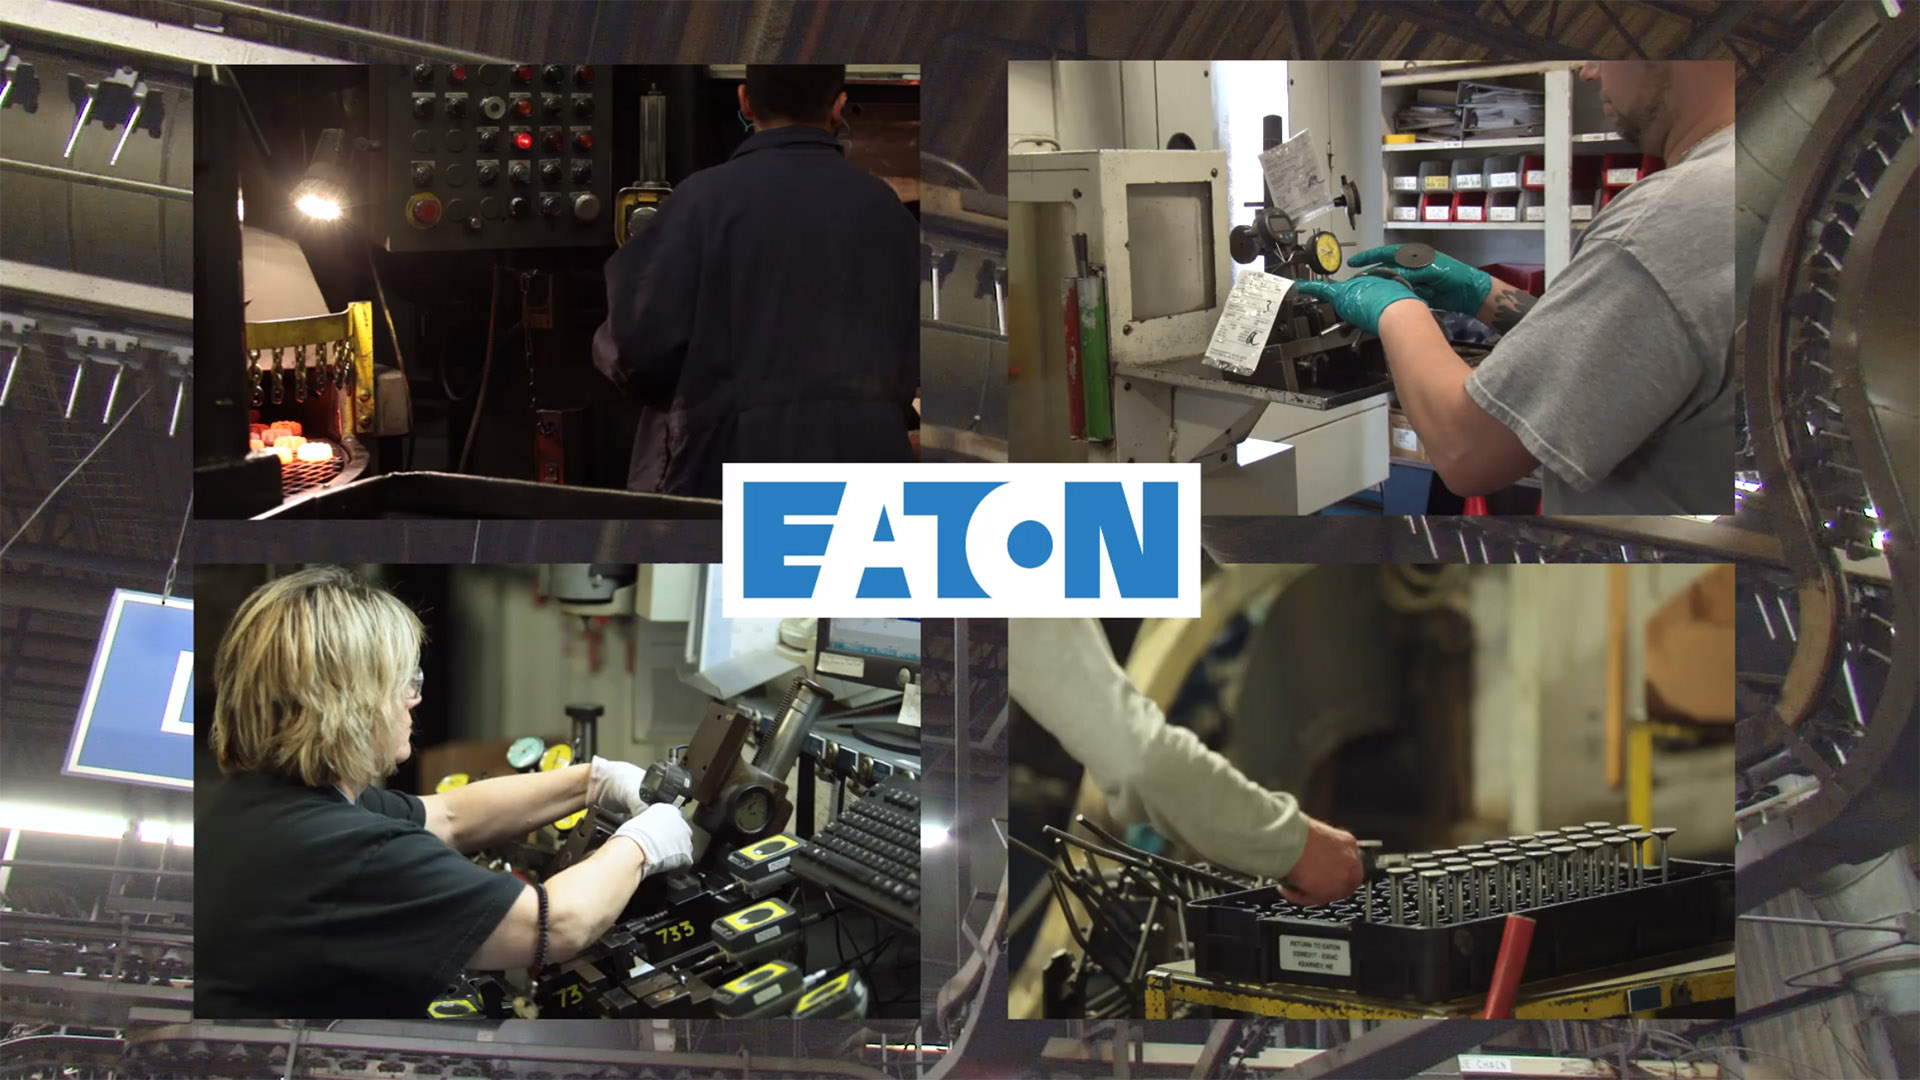 Eaton manufacturing video. Omaha Video Production Company LP Photo Video.